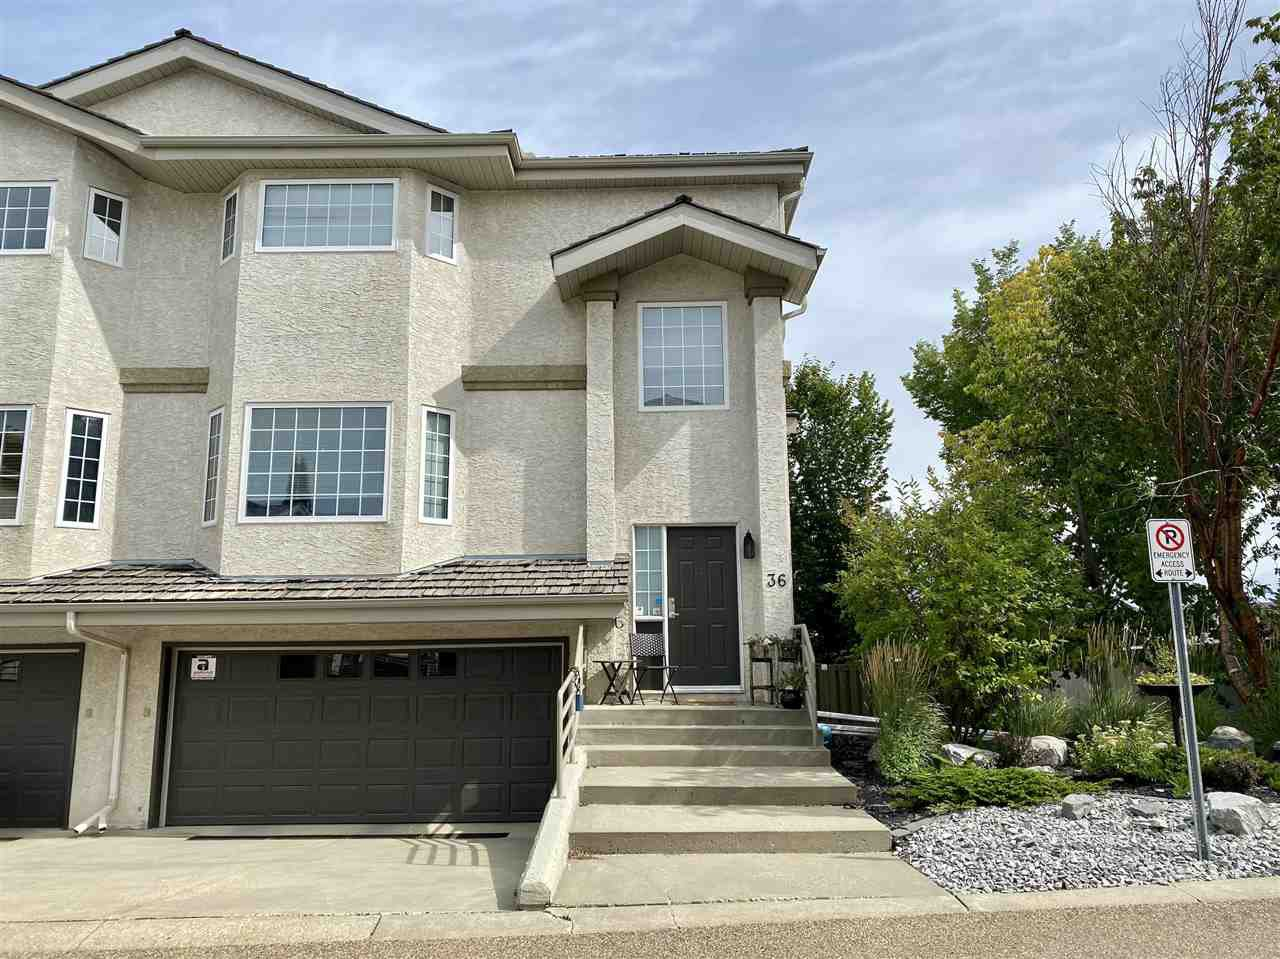 Main Photo: 36 1295 CARTER CREST Road in Edmonton: Zone 14 Townhouse for sale : MLS®# E4211914